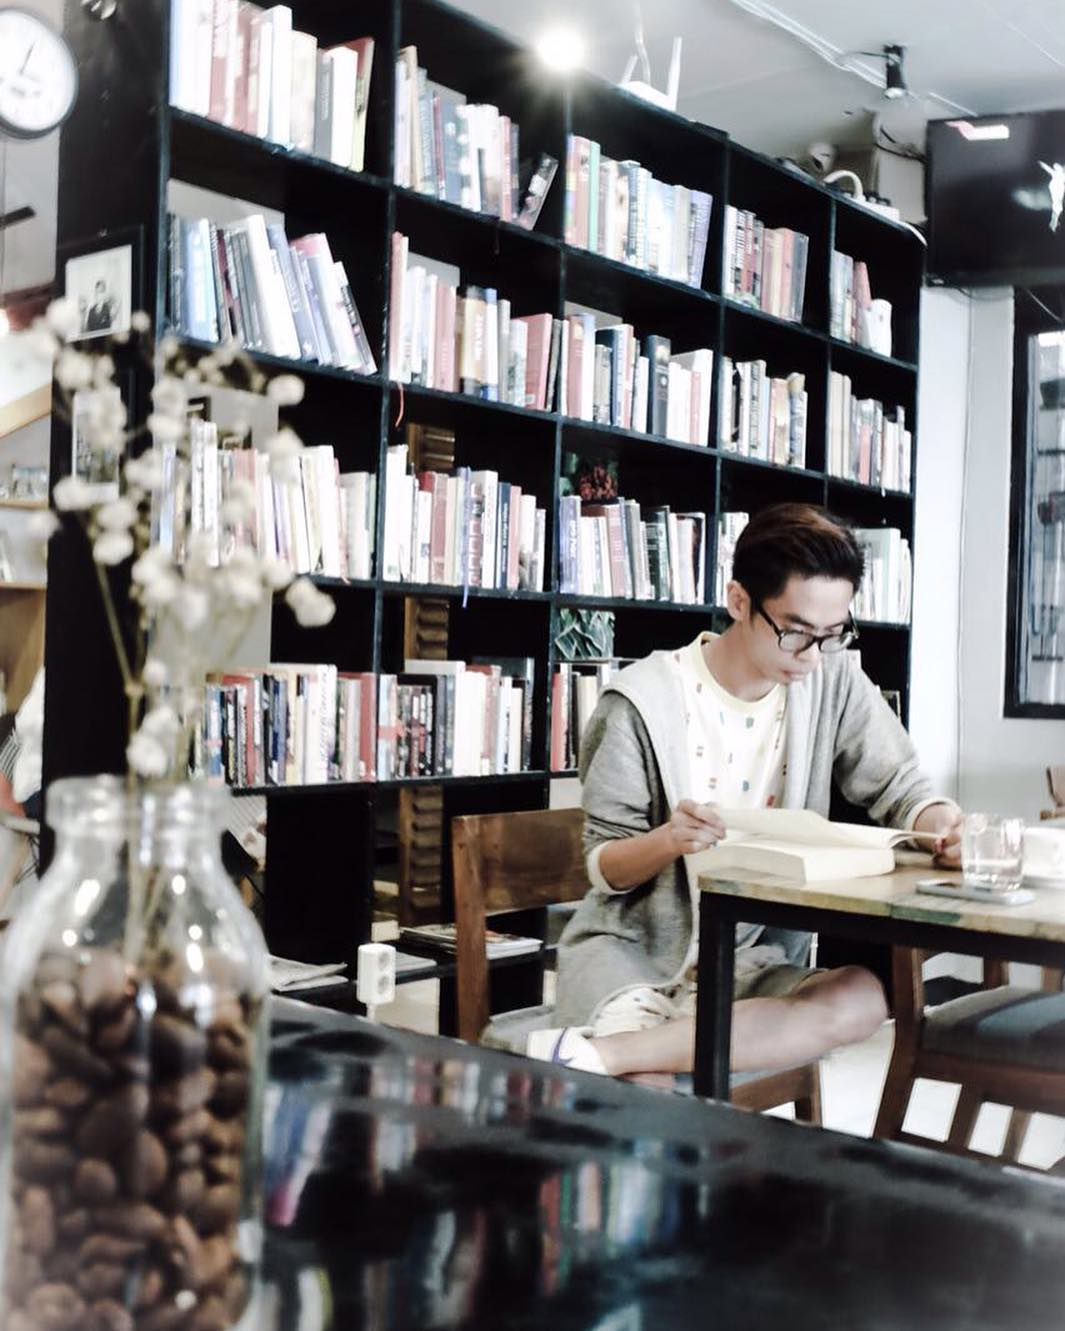 Blanco Coffee and Books, Blanco Coffee and Books Yogyakarta, Yogyakarta, Dolan Dolen, Dolaners Blanco Coffee and Books via didirodiman - Dolan Dolen